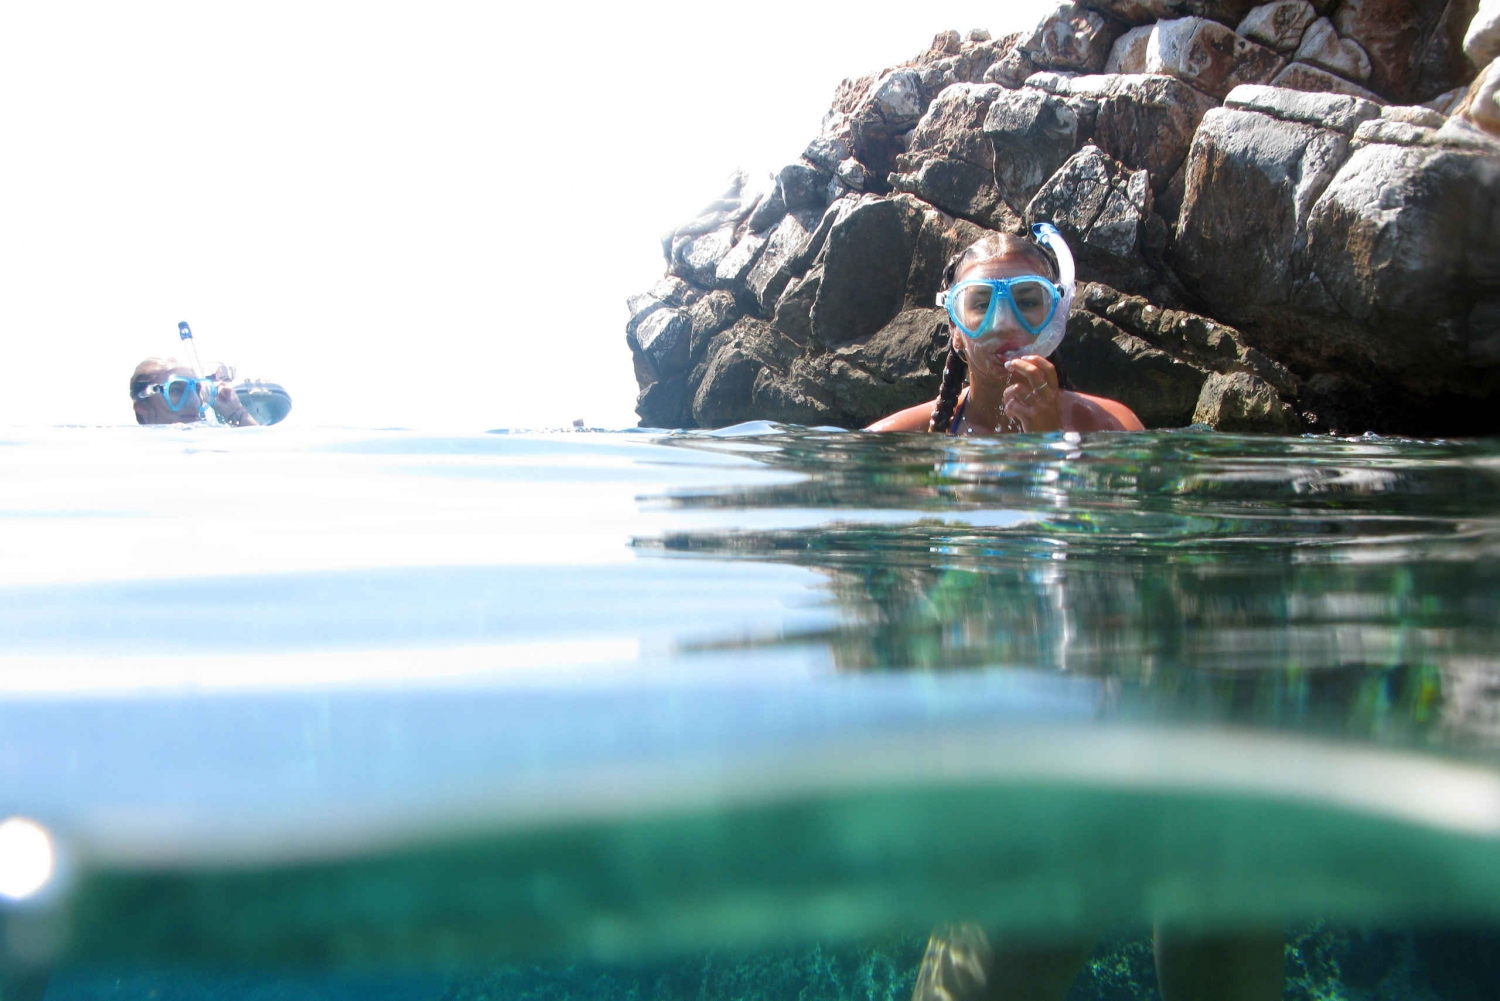 Athens East Coast: Snorkeling Boat Excursion in Nea Makri